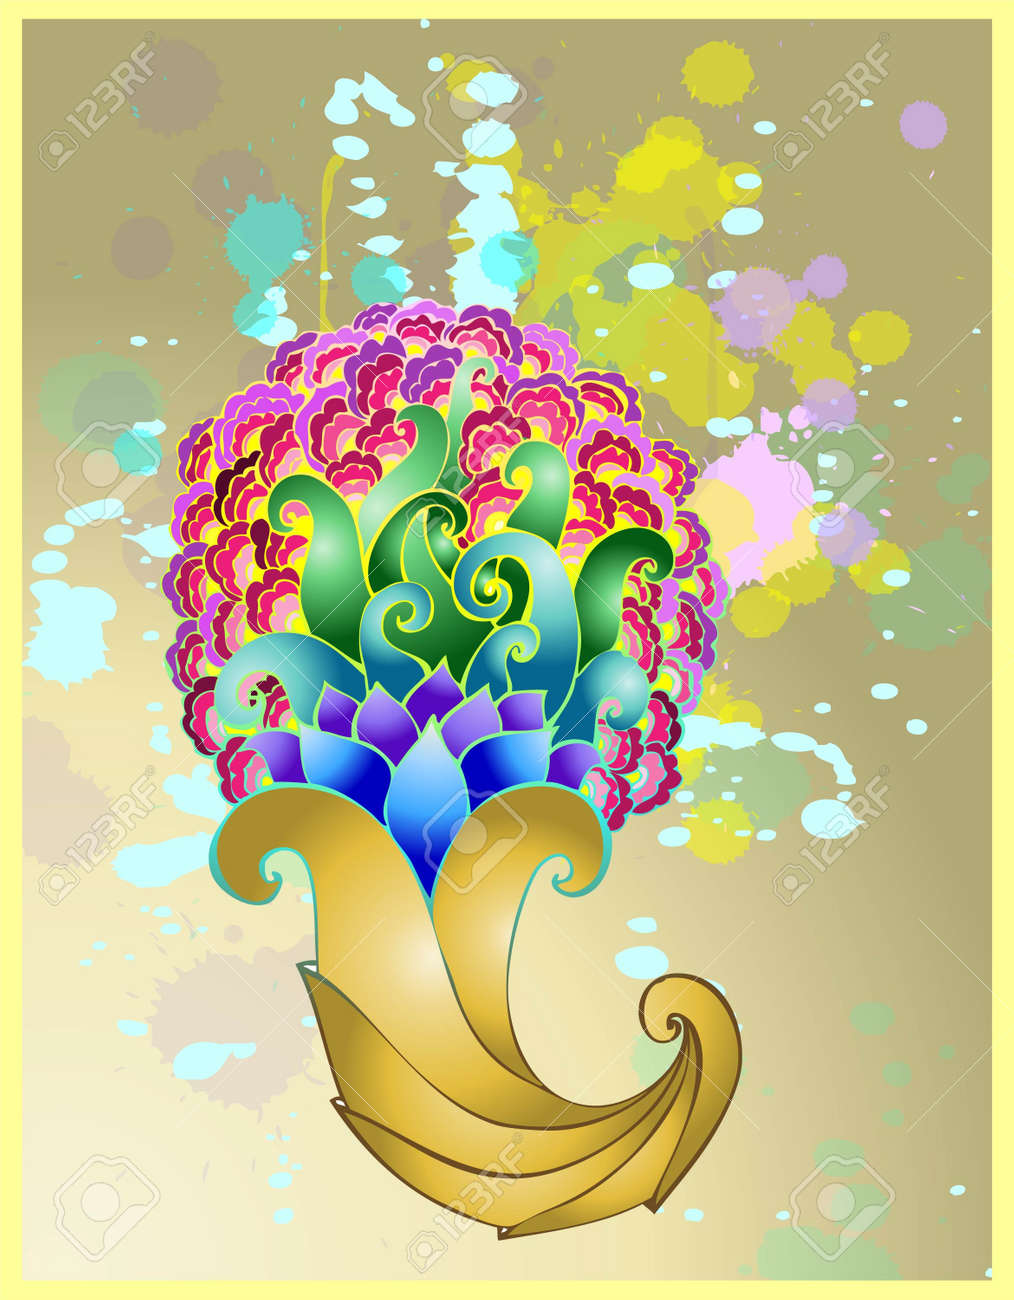 Golden horn of plenty with floral patterns. Stock Vector - 14152813